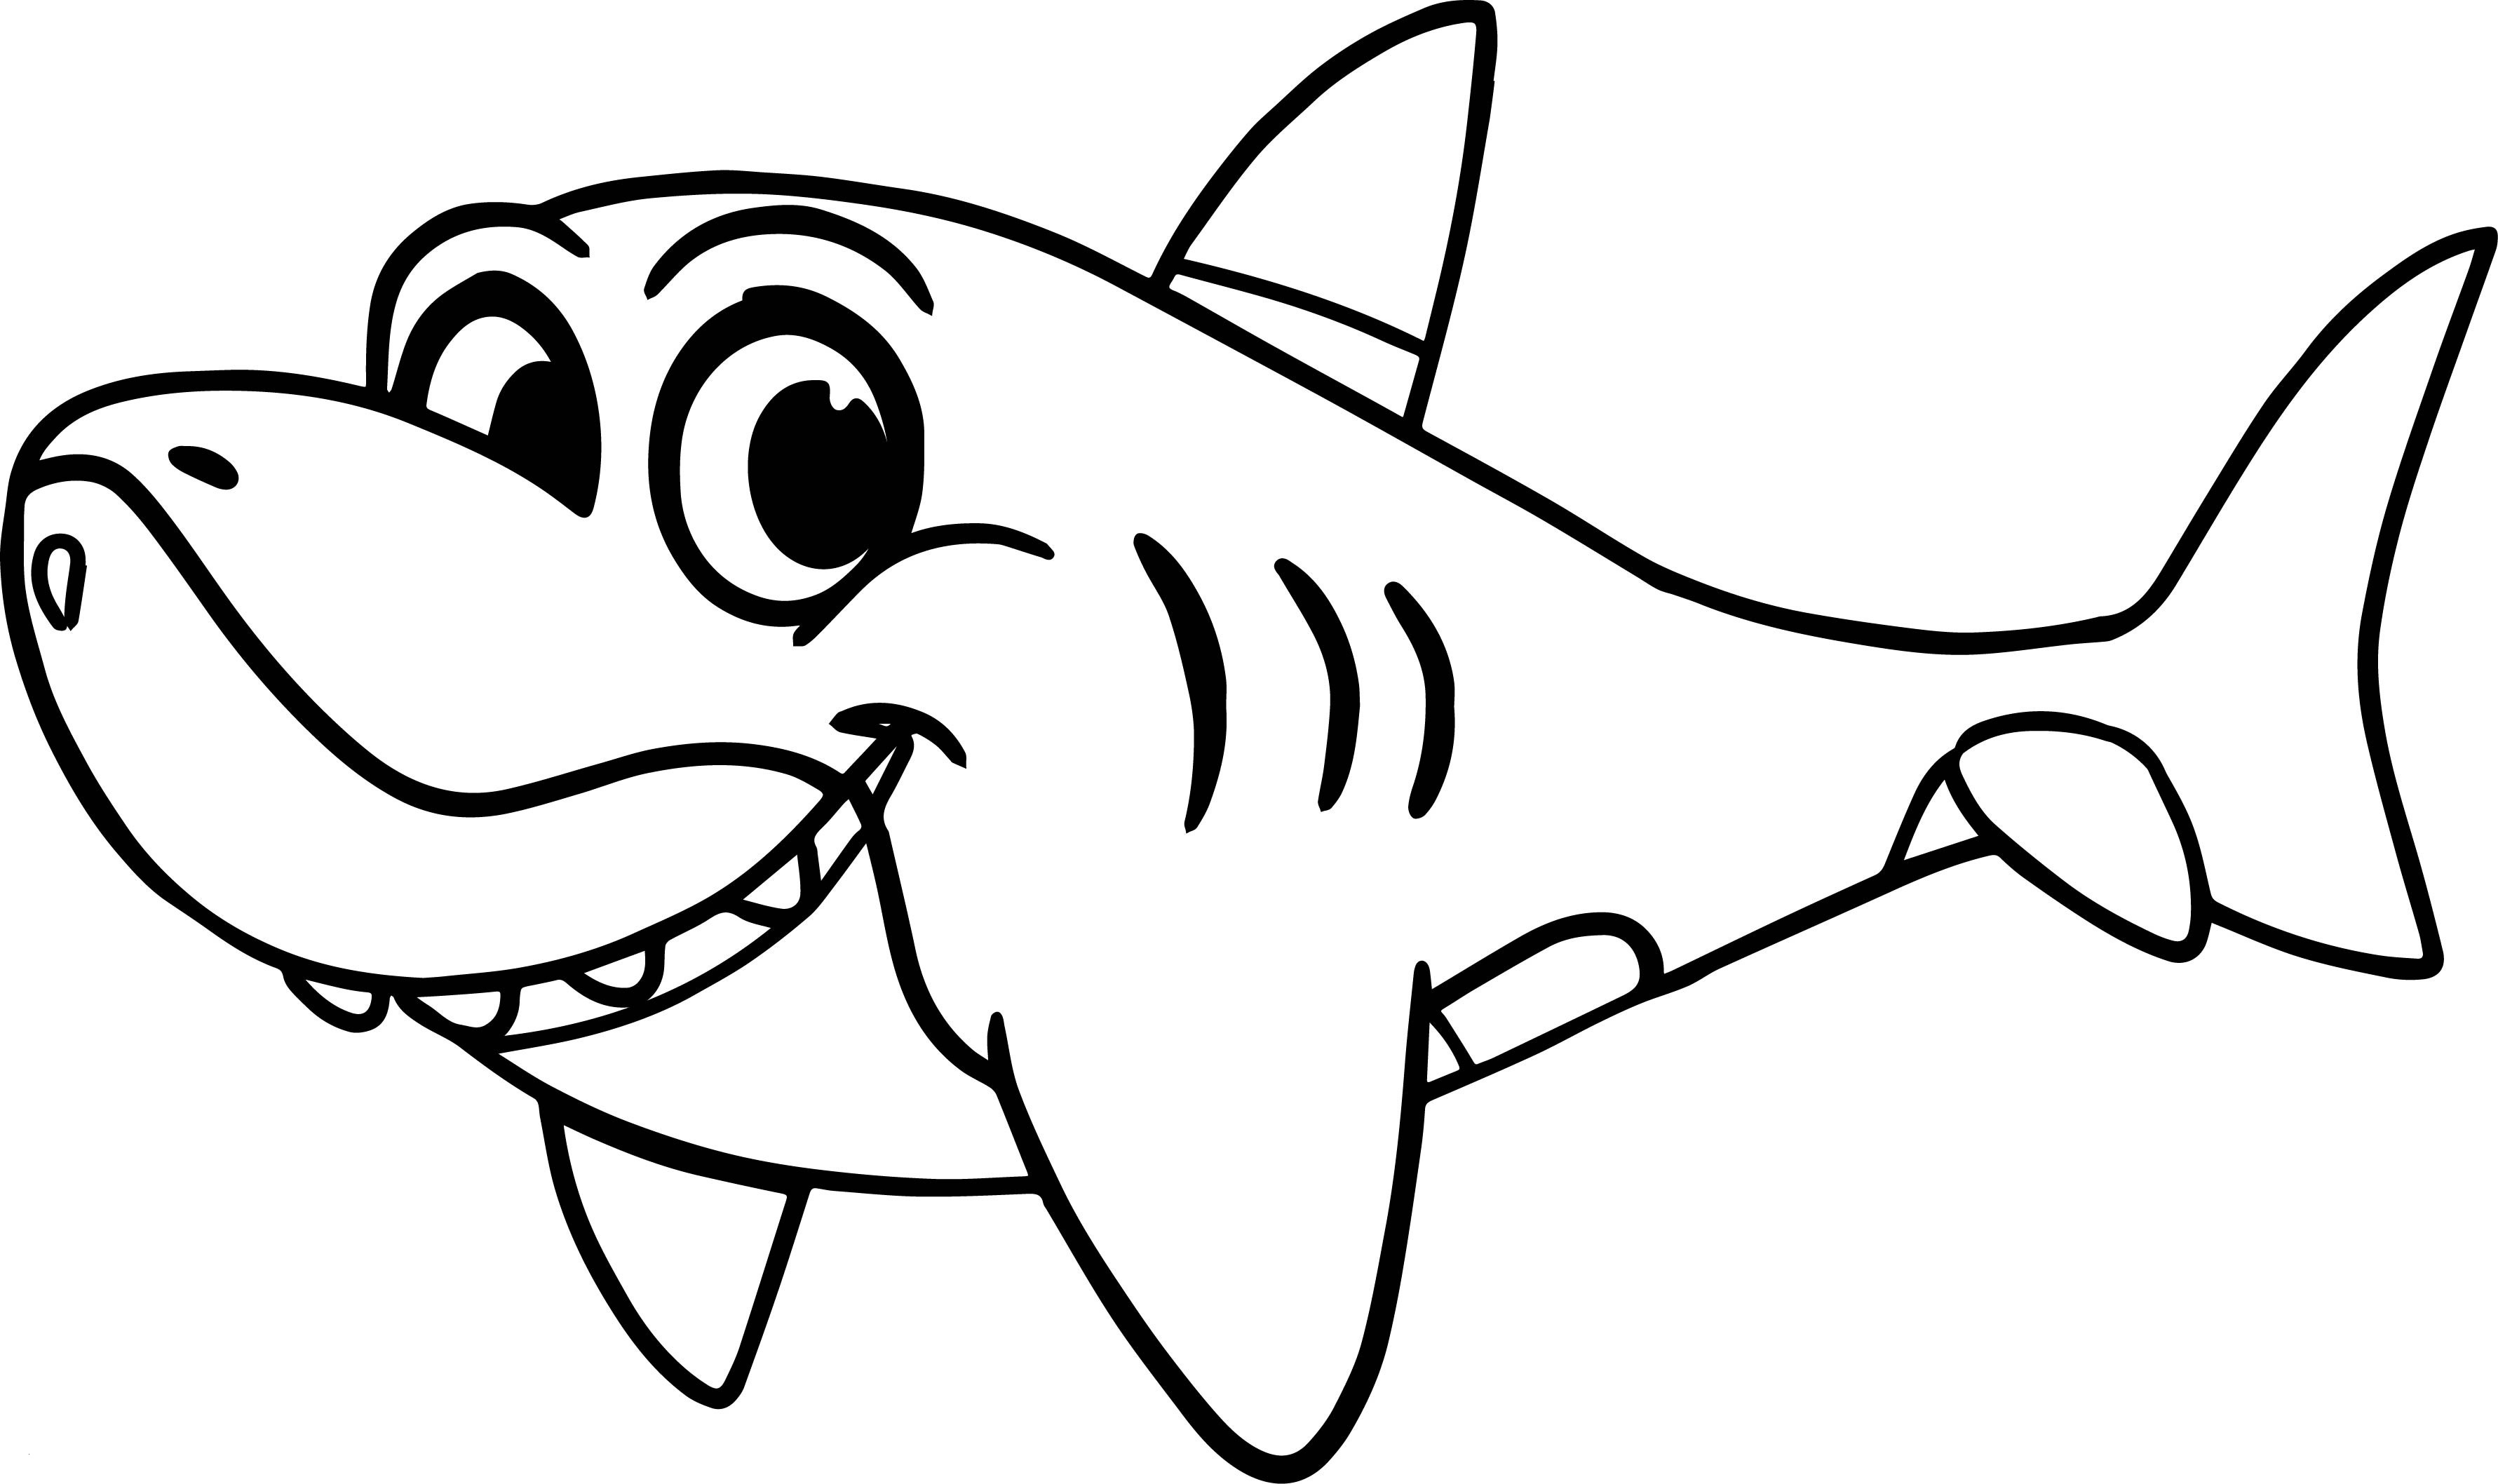 shark colouring picture shark sheets for kids activity shelter shark picture colouring